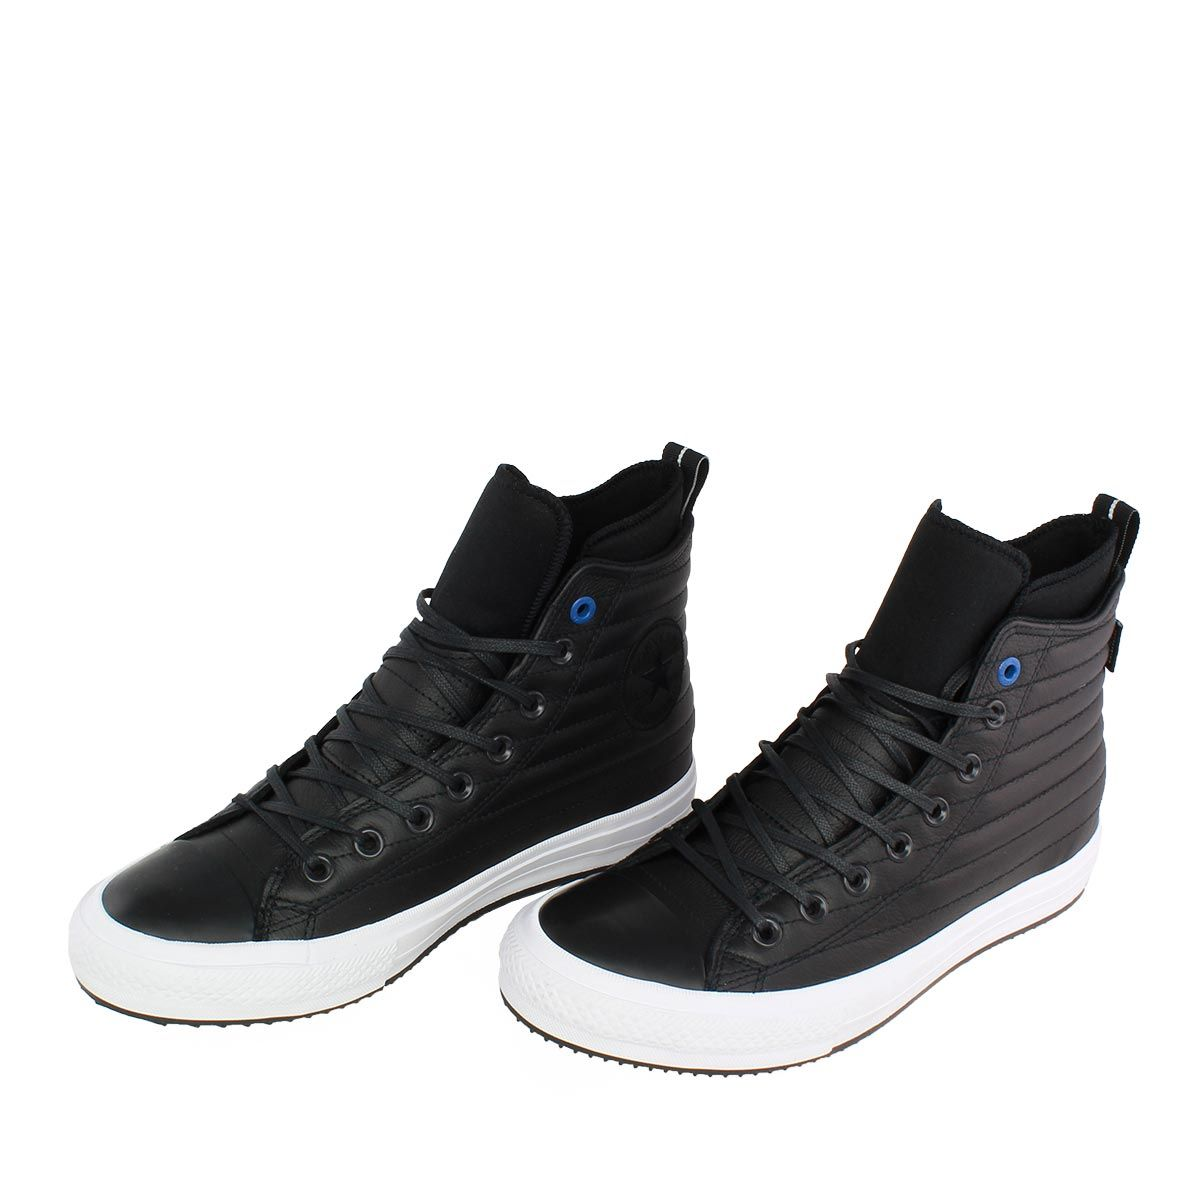 reputable site bdf02 647cb Converse Chuck Taylor All Star Waterproof Boot High μαύρα μποτάκια με  αδιάβροχο quilted δέρμα στο πάνω